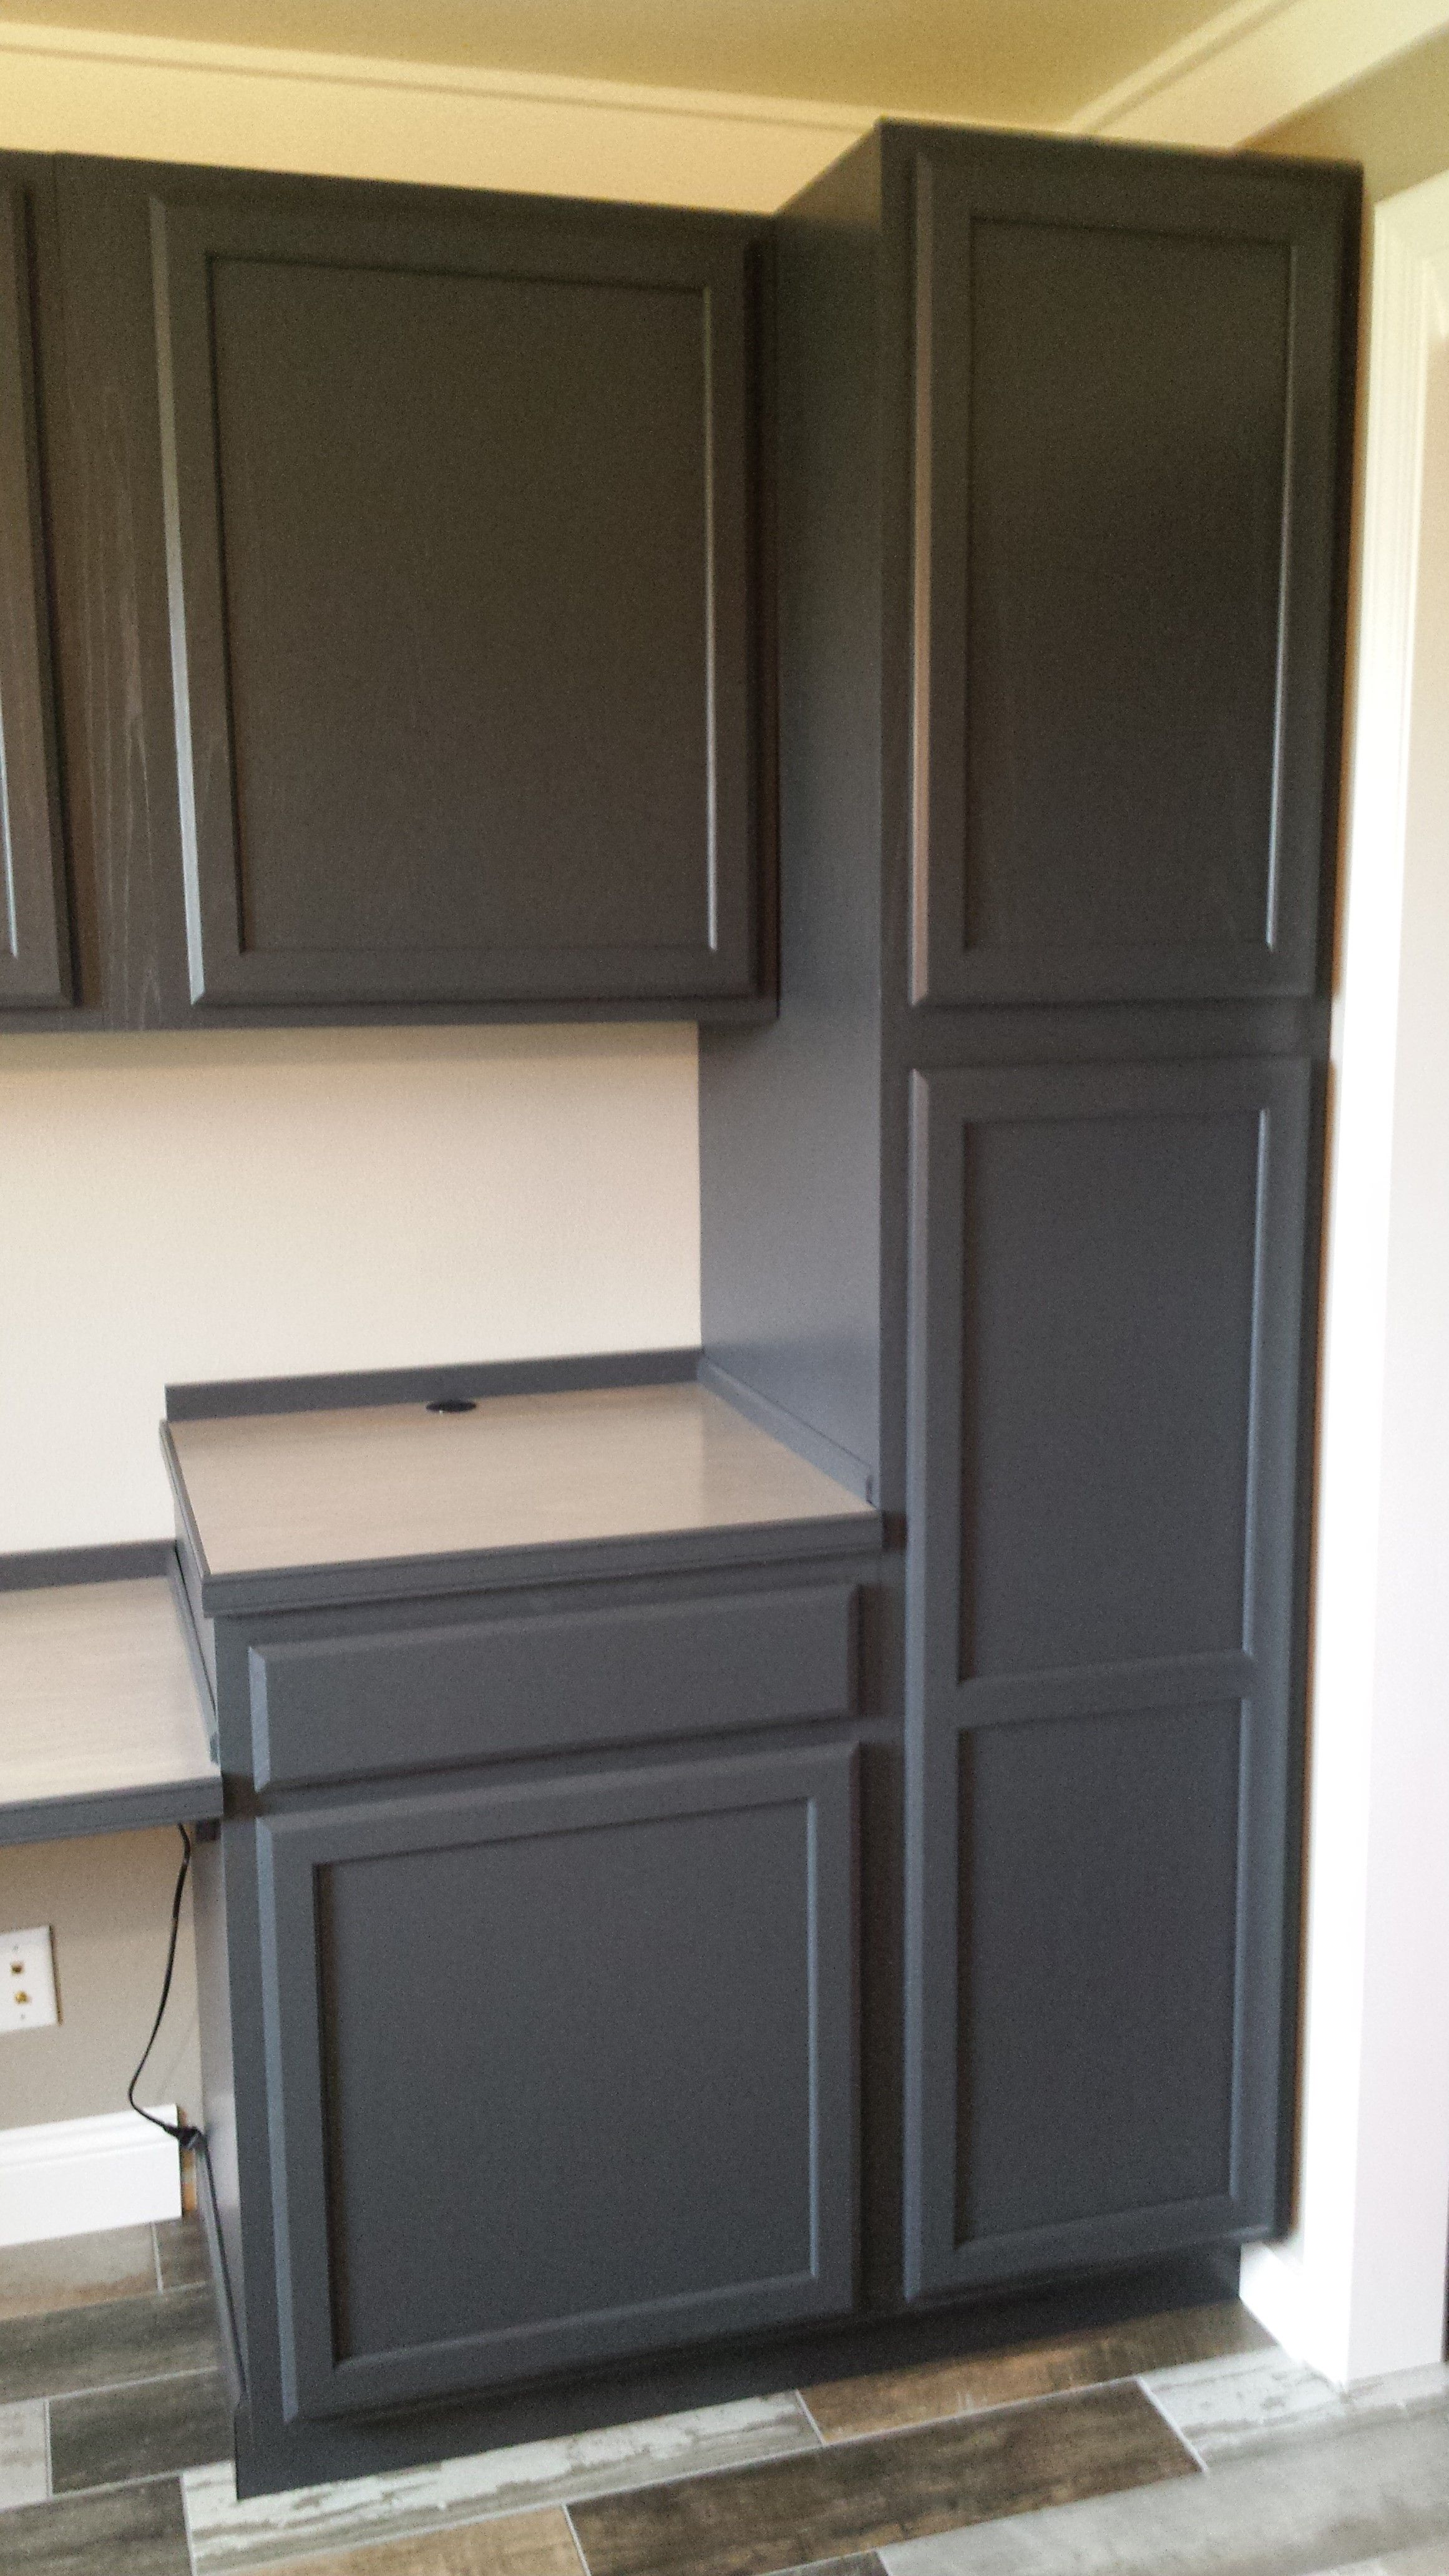 finished cabinets painted in behr cracked pepper - Behr Paint Kitchen Cabinets